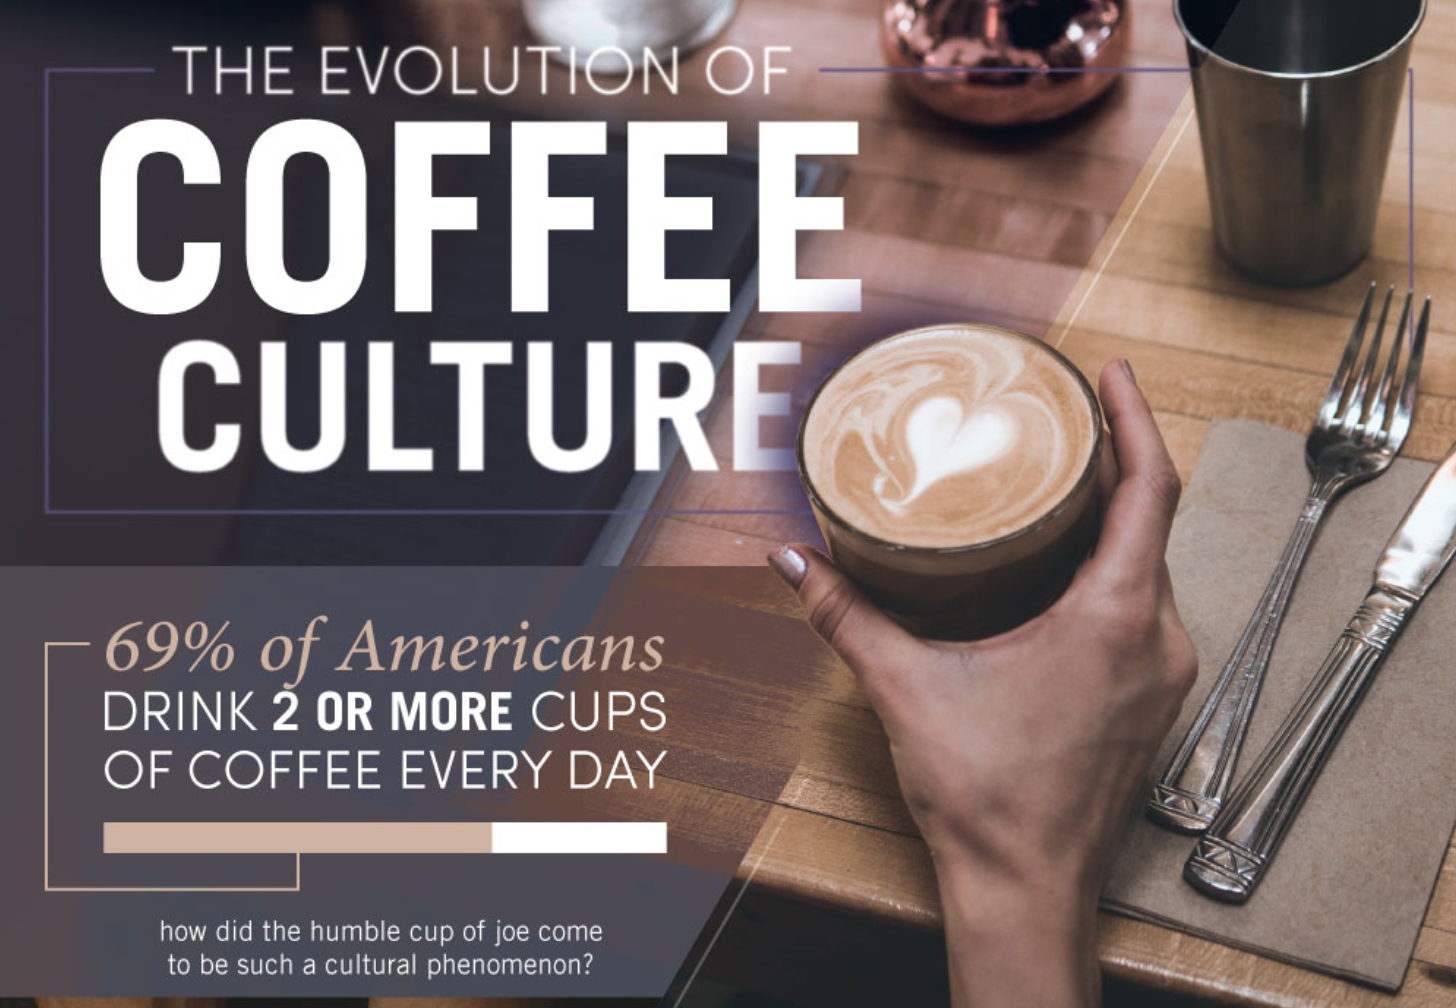 /the-evolution-of-coffee-culture-2f412b555313 feature image